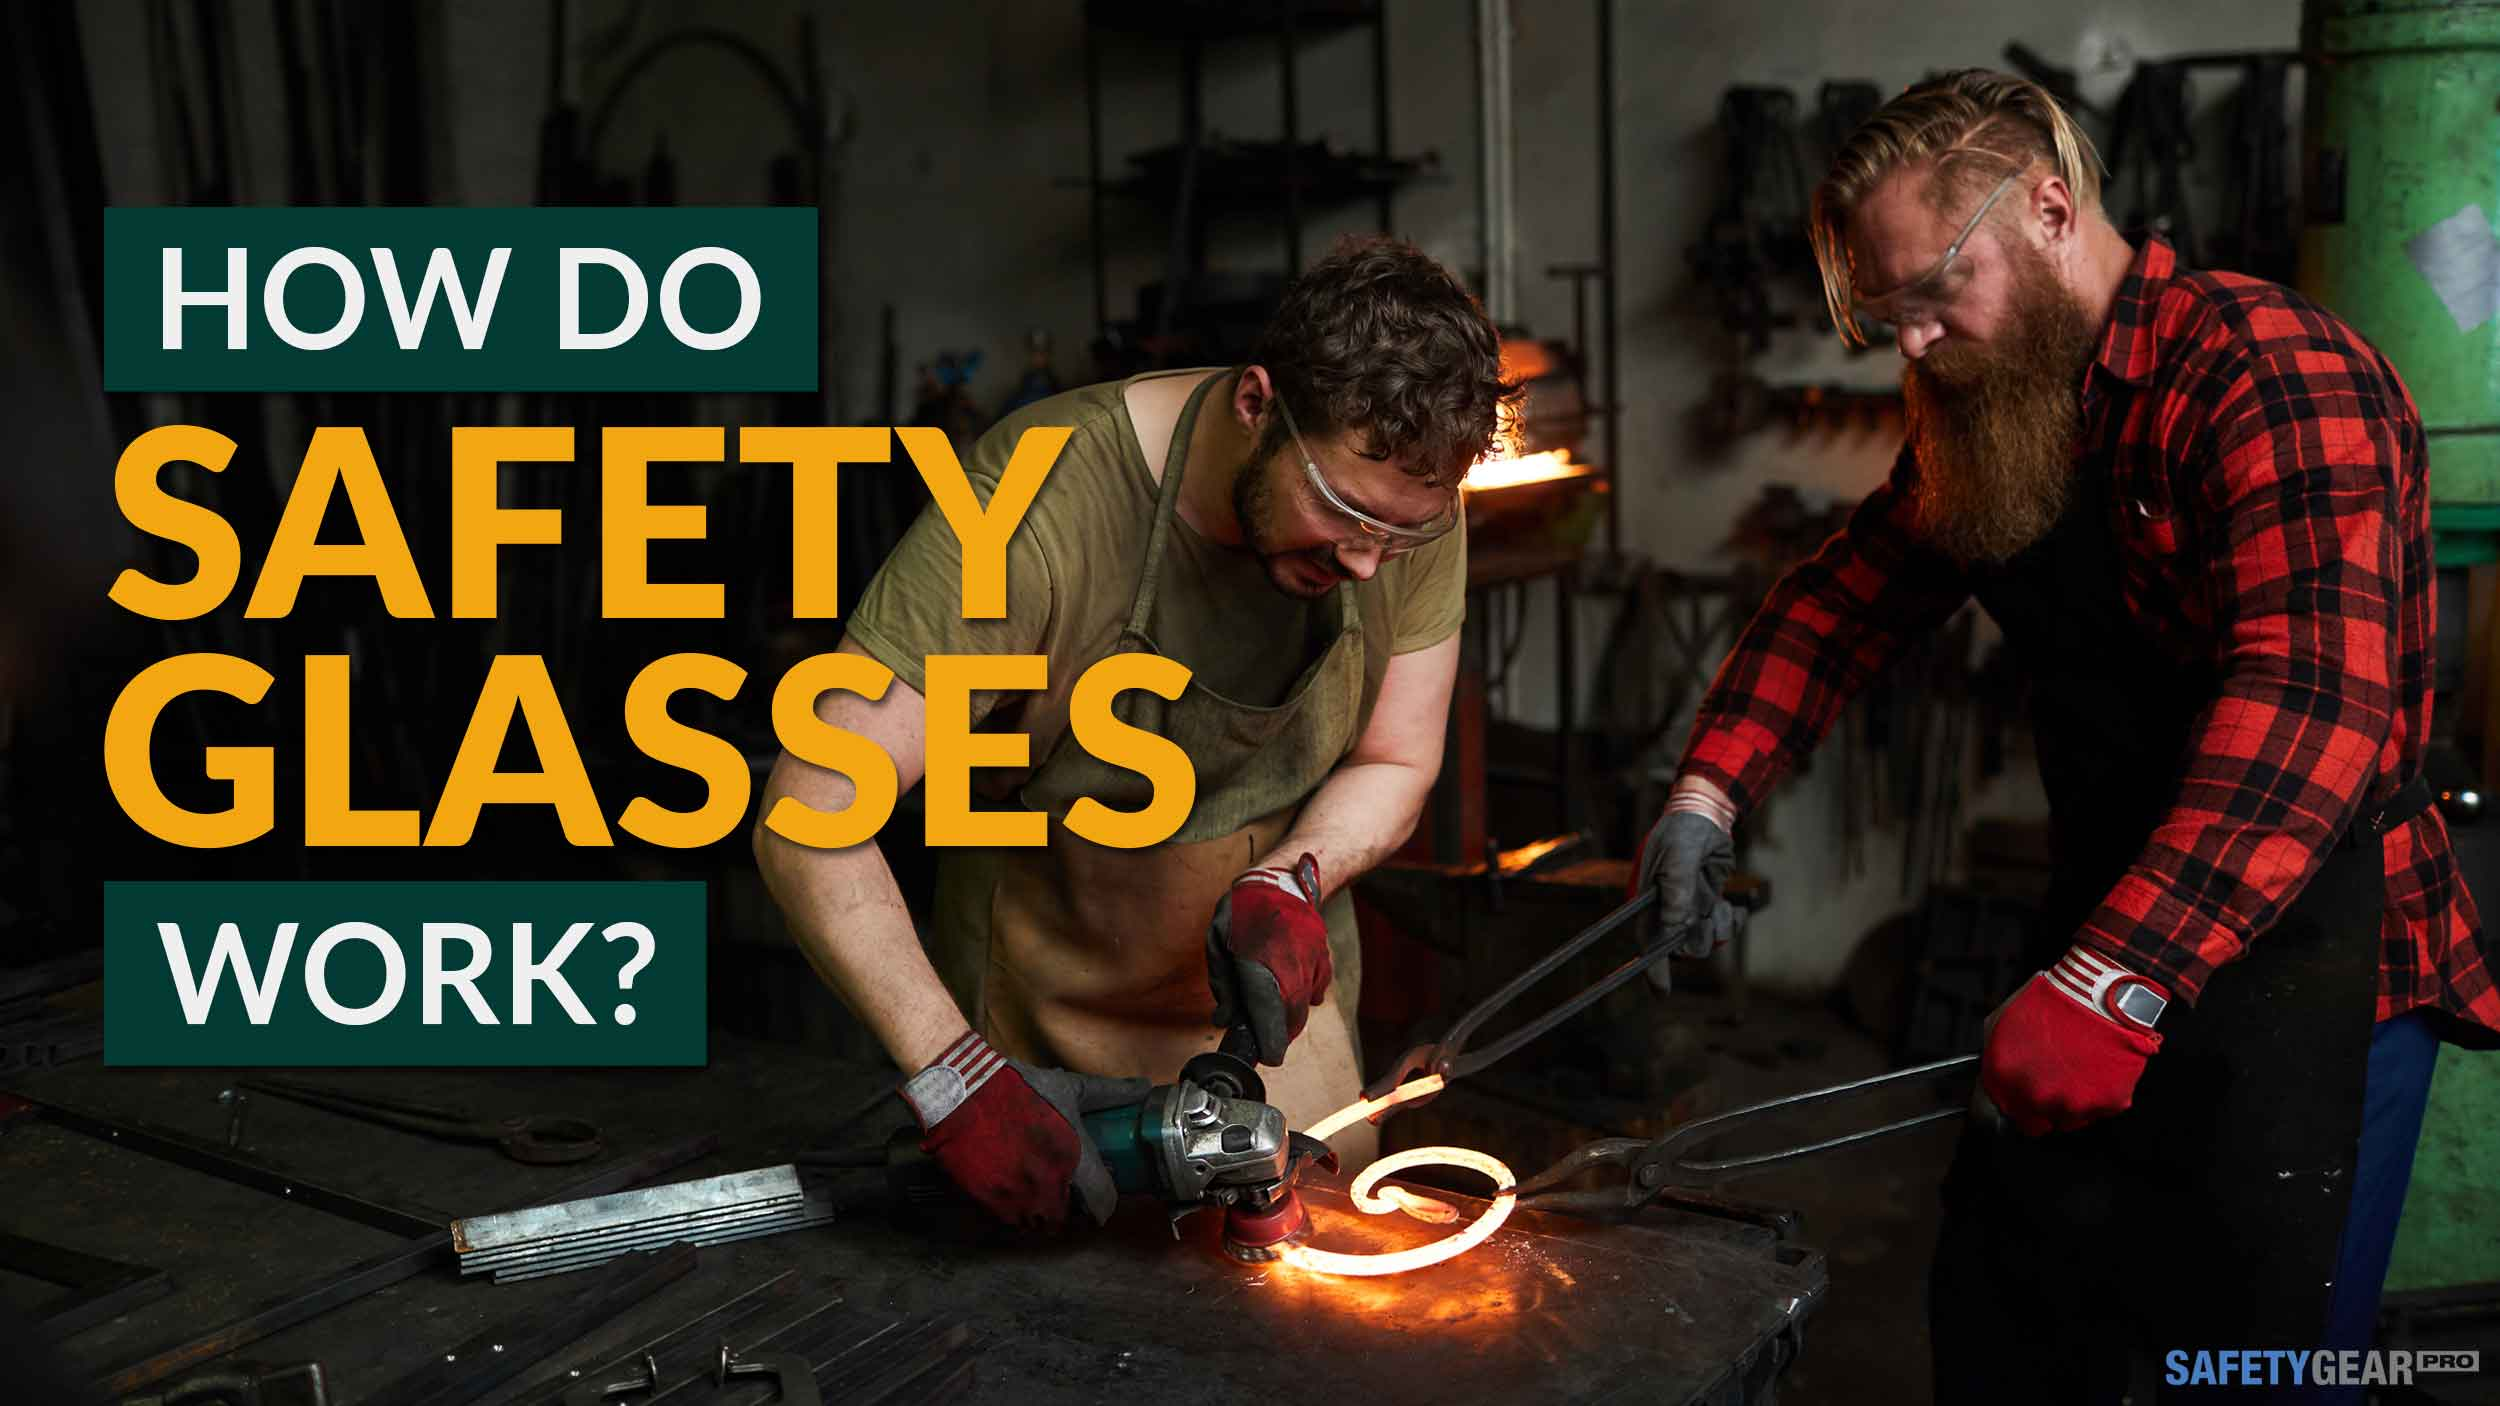 How safety glasses work